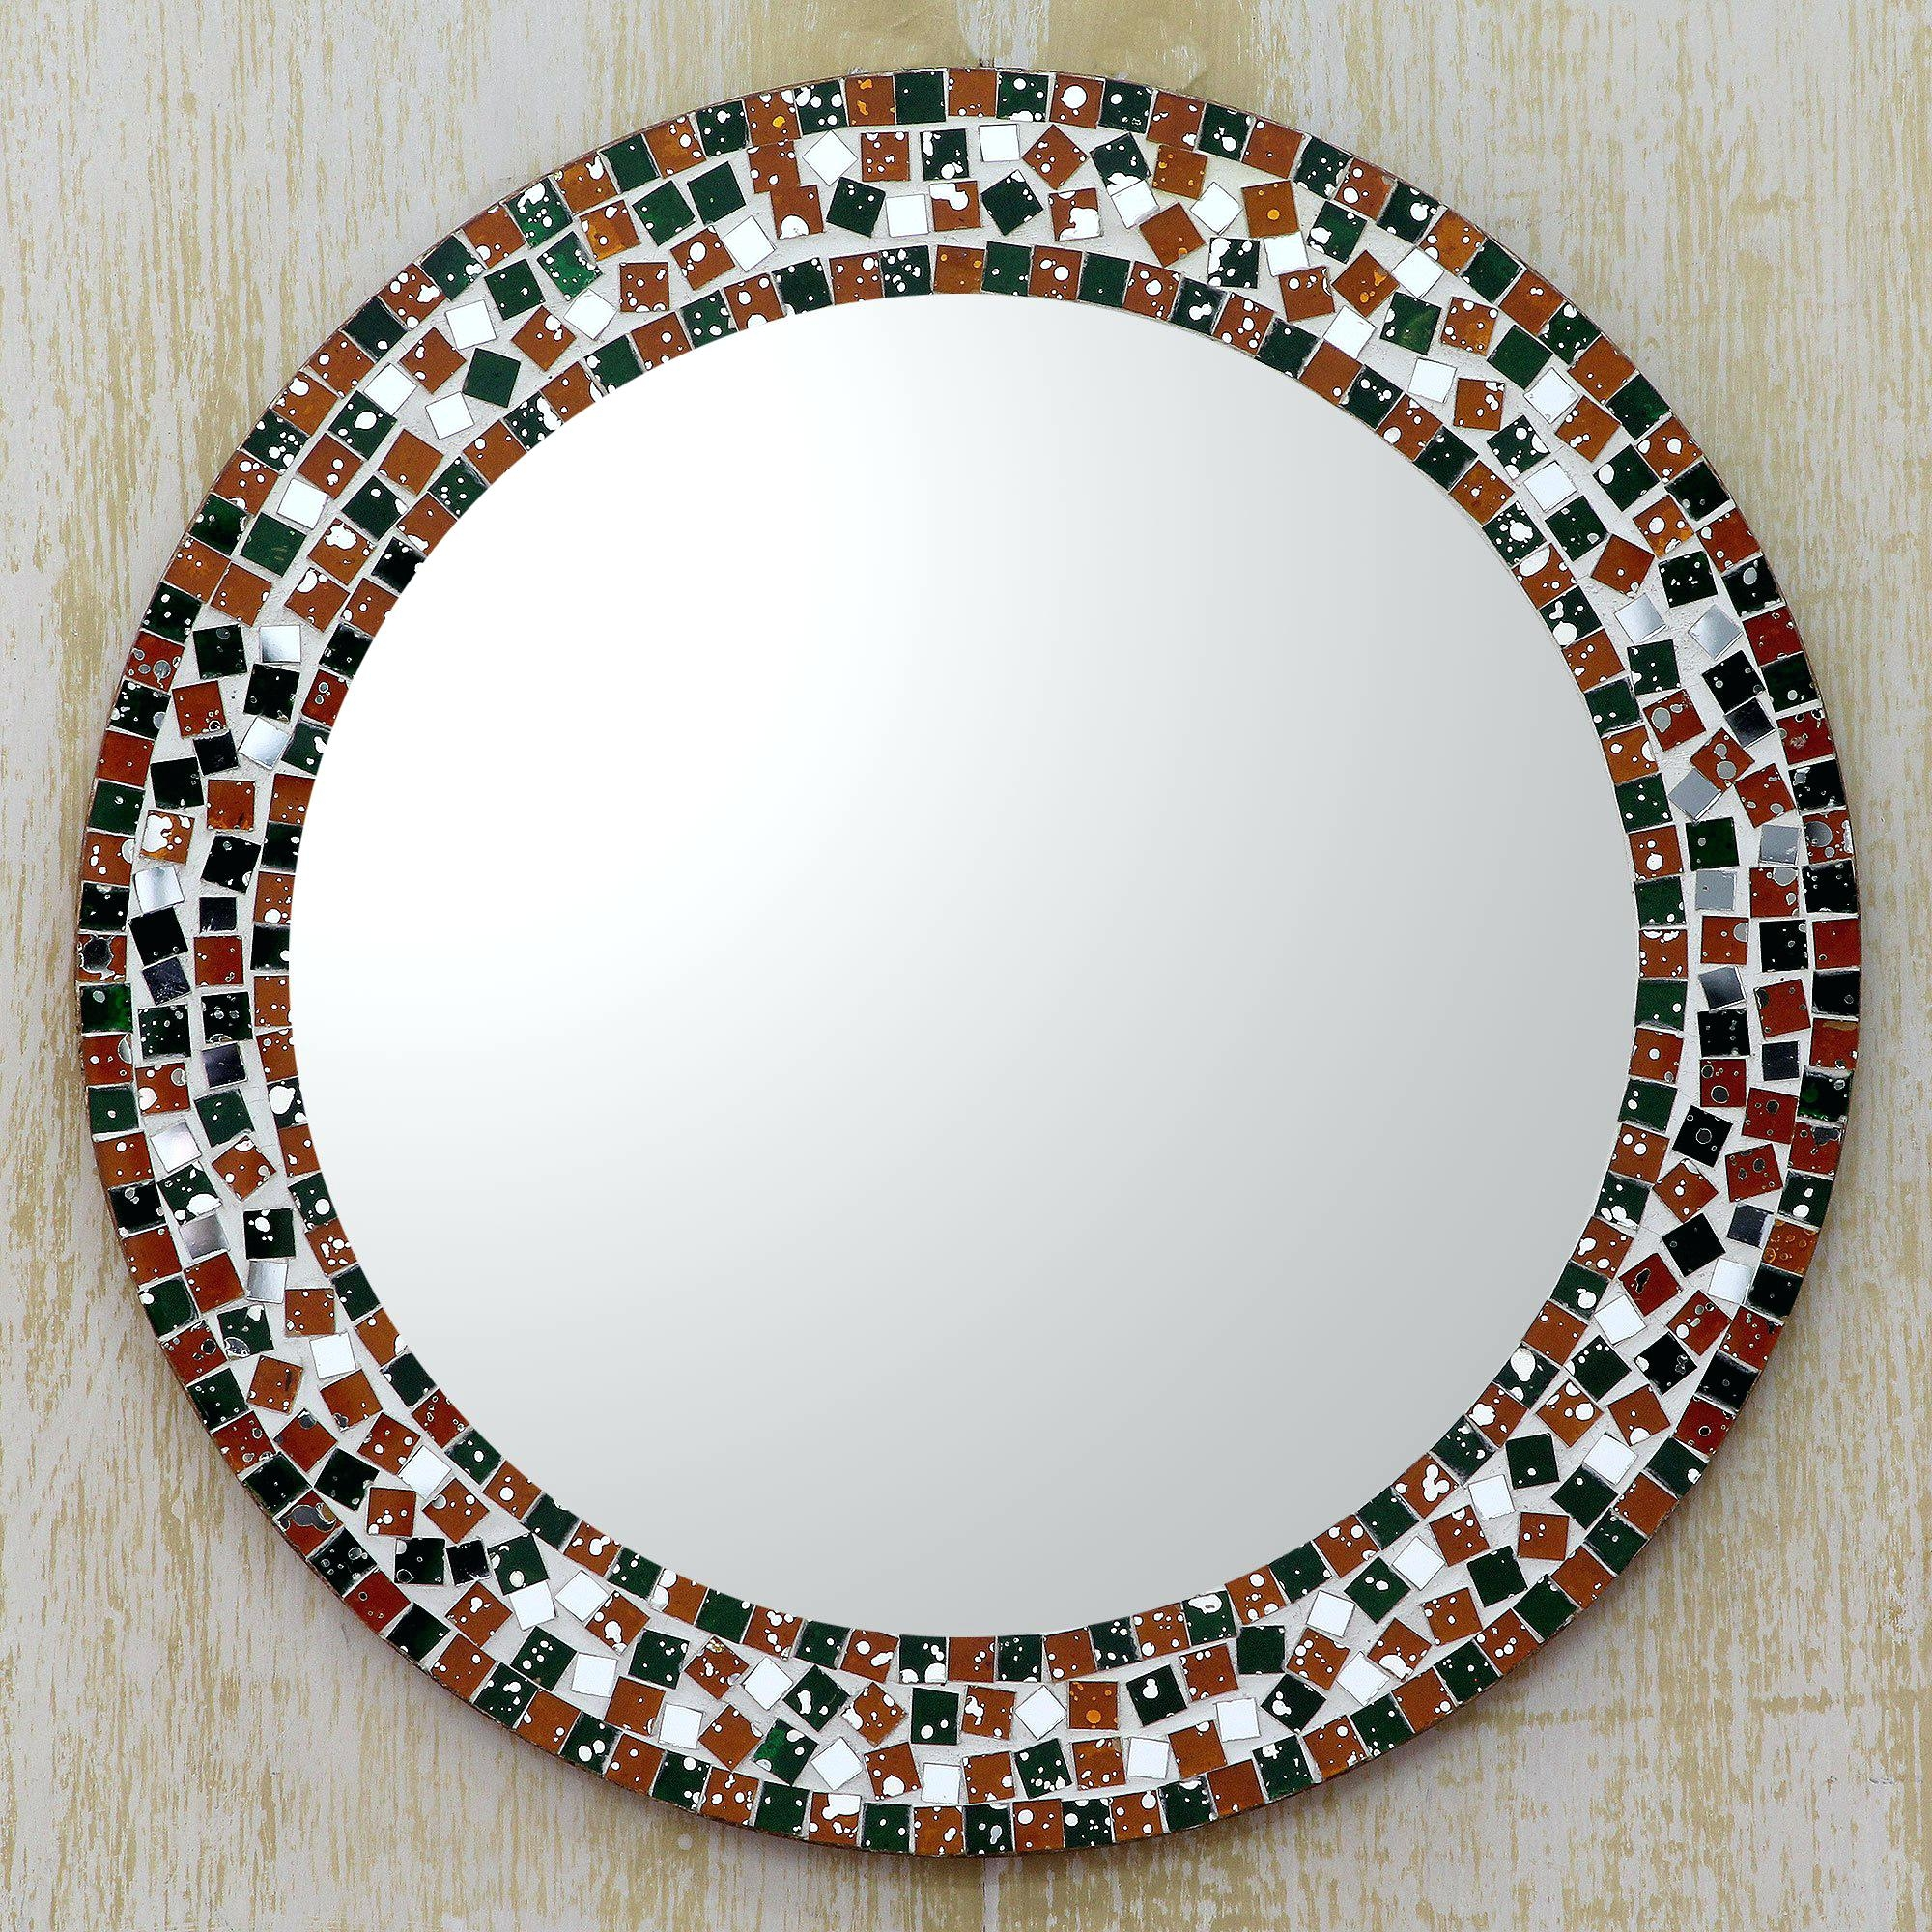 Mosaic Mirror Teal And Silver Round Wall Mirrorround Mirrors For In Mosaic Mirrors For Sale (Image 11 of 15)